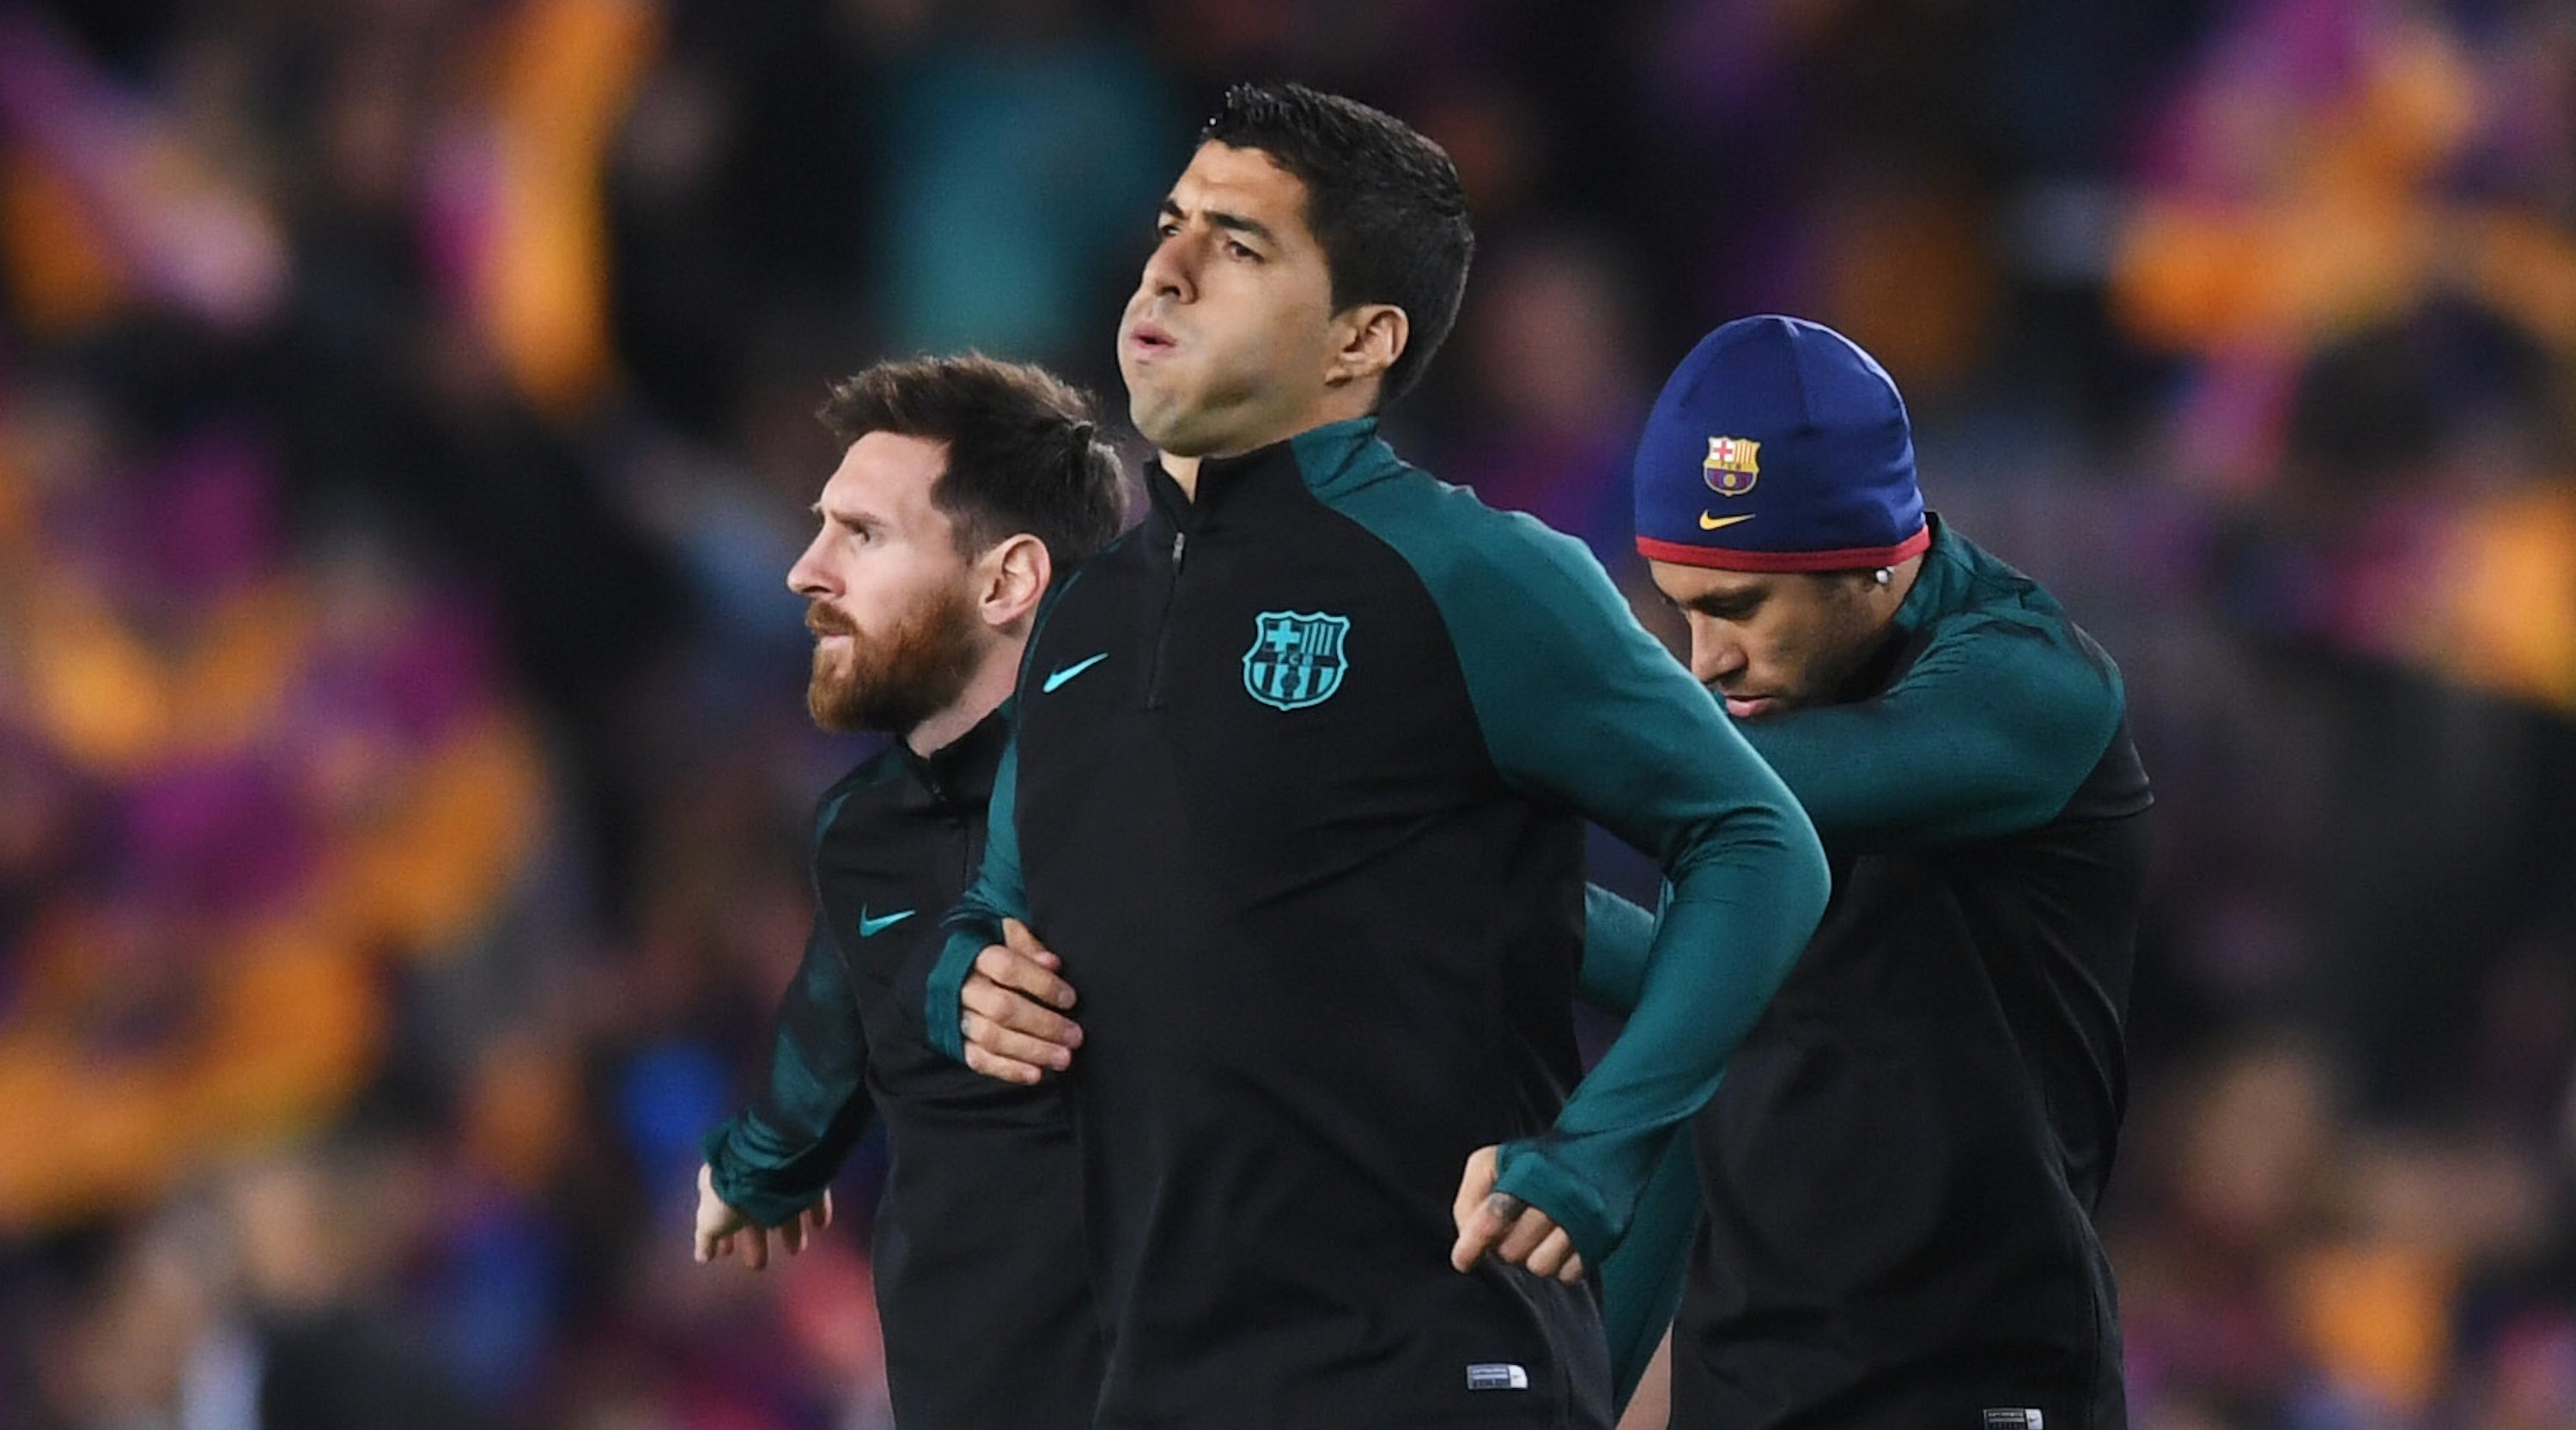 BARCELONA, SPAIN - MARCH 08: Lionel Messi, Luis Suarez and Neymar of Barcelona warm up prior to the UEFA Champions League Round of 16 second leg match between FC Barcelona and Paris Saint-Germain at Camp Nou on March 8, 2017 in Barcelona, Spain. (Photo by Michael Regan/Getty Images)